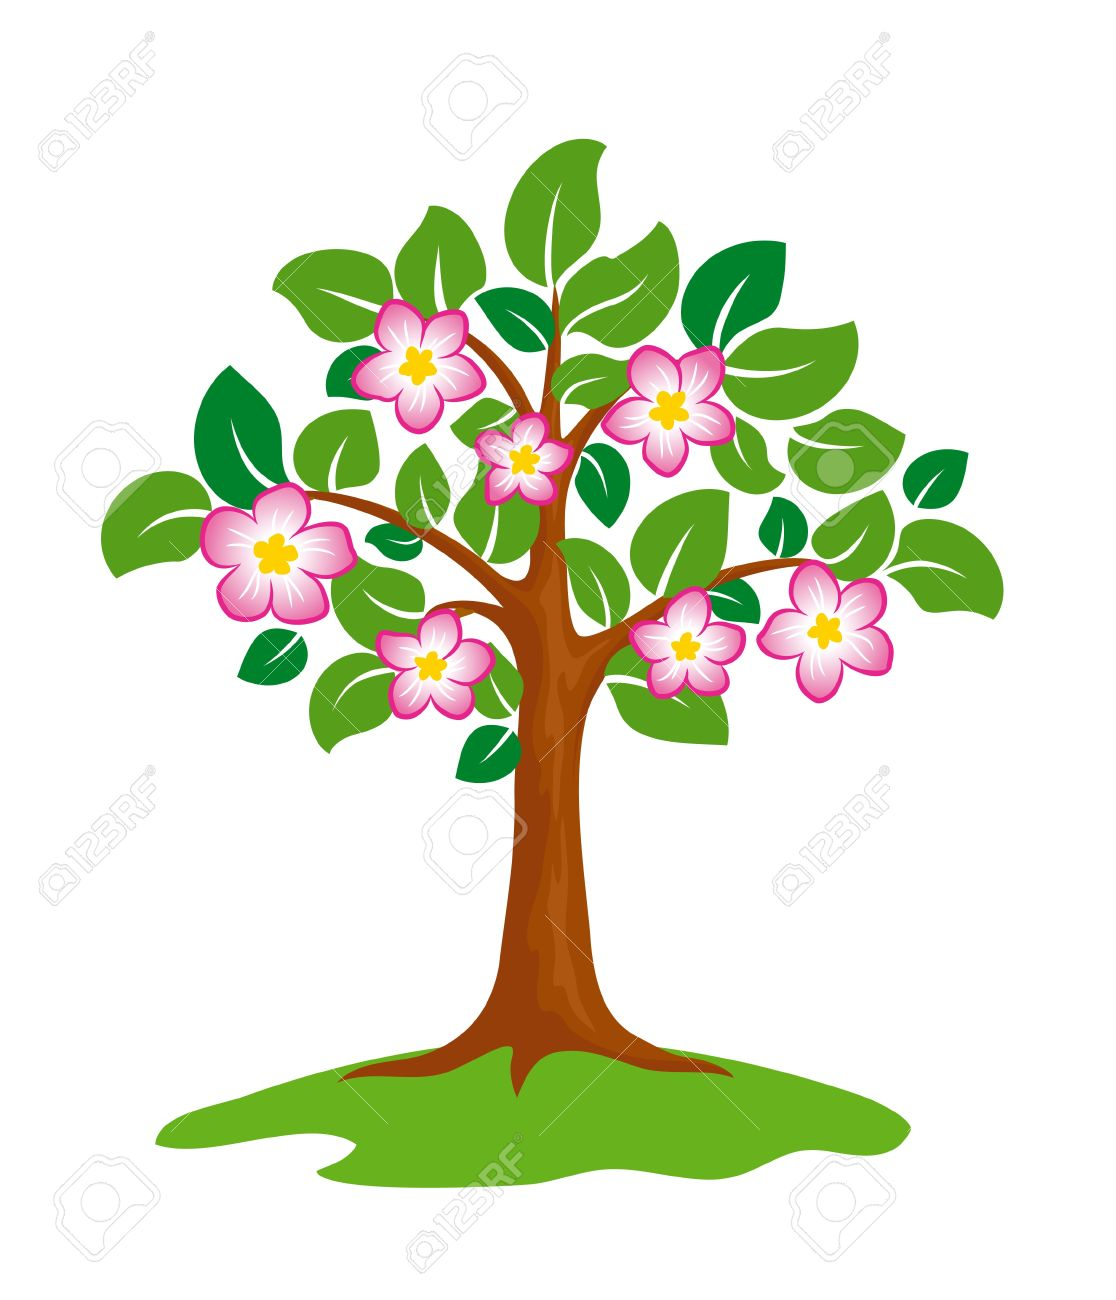 Blooming Tree Clip Art.